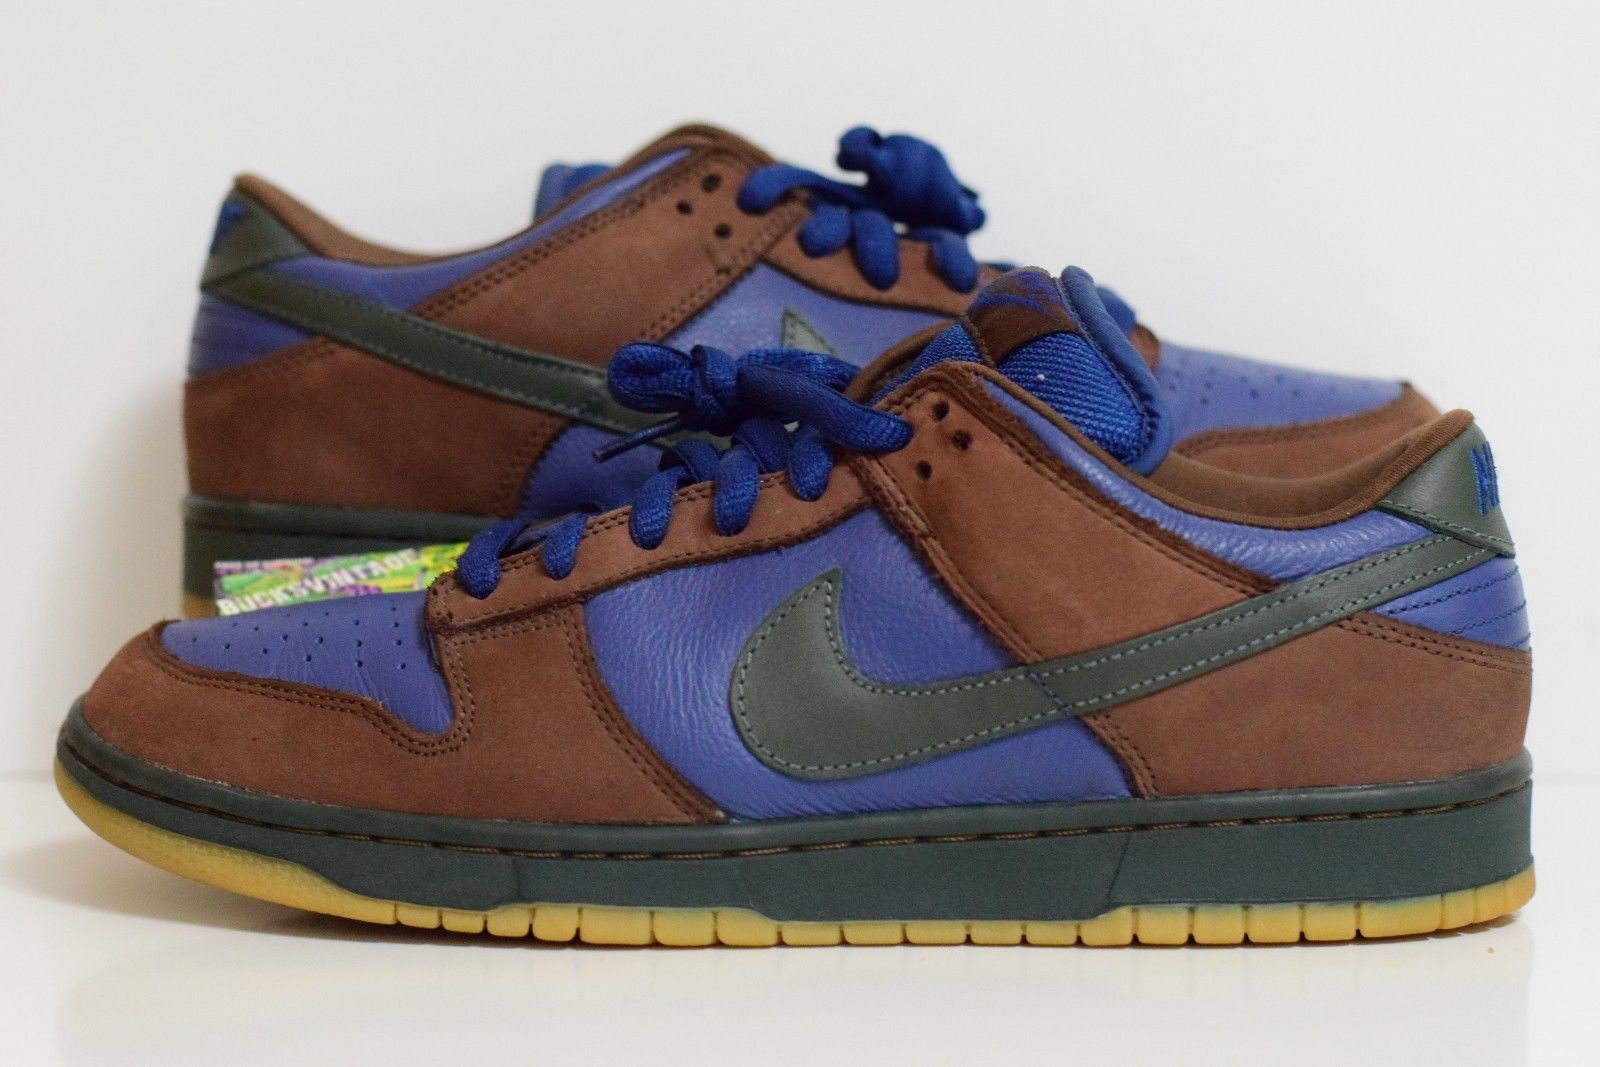 Nike Dunk SB Low Barf Sneakers (Navy/Outdoor Green/Light Chocolate)